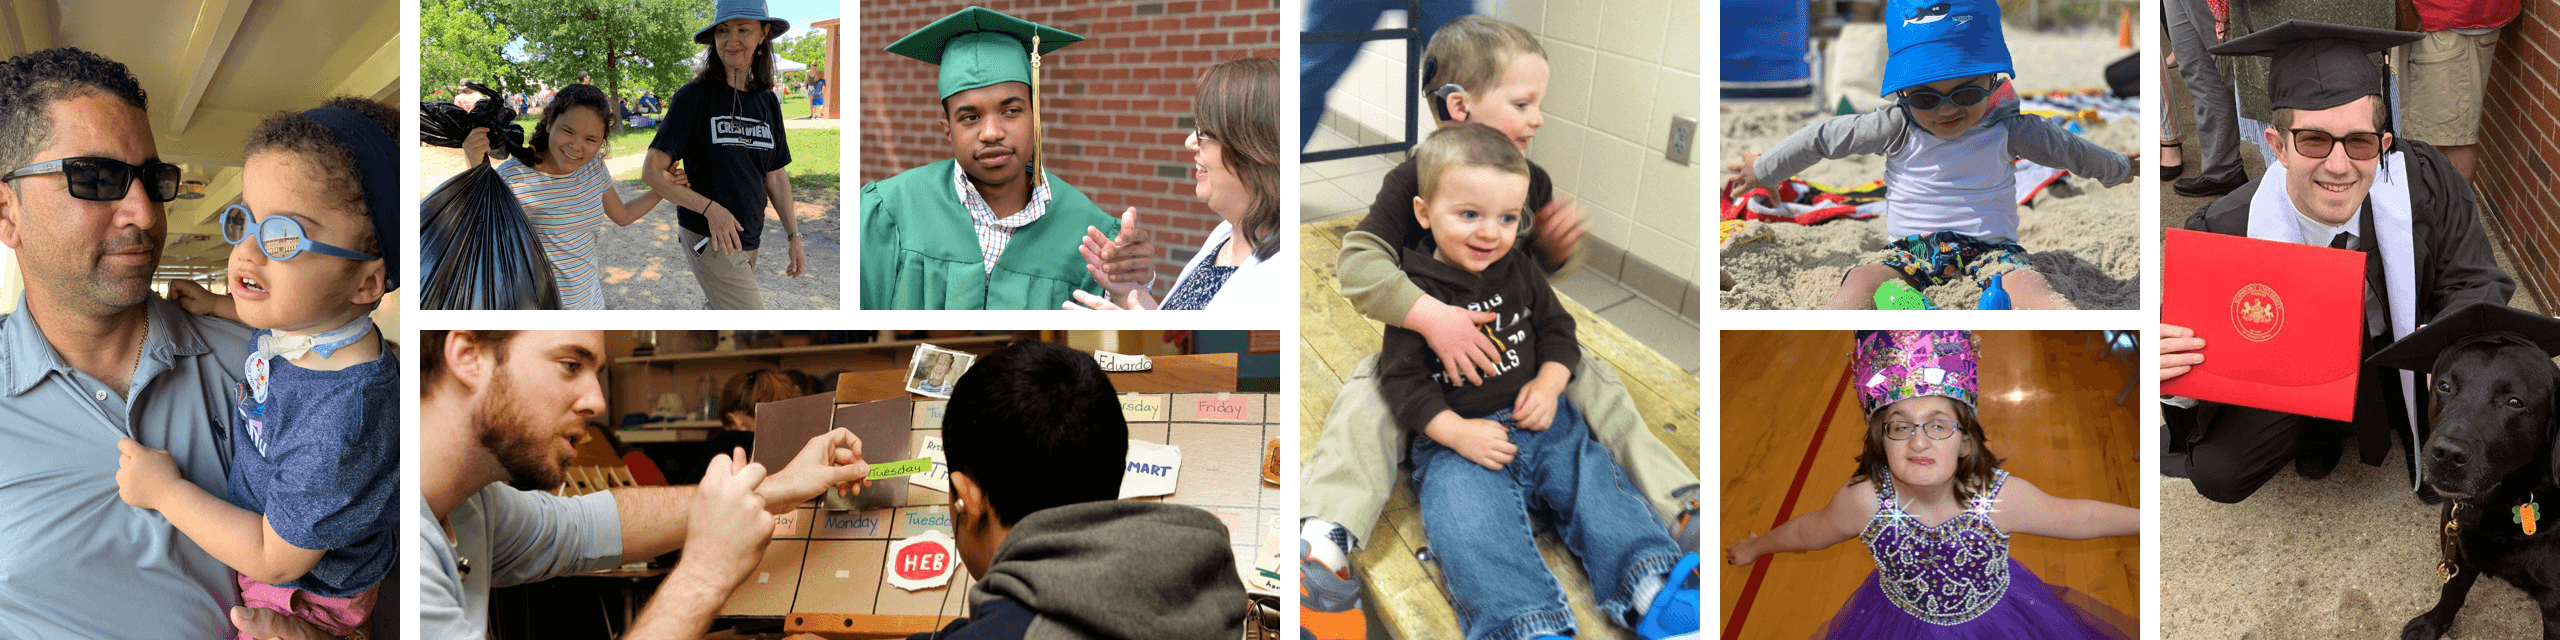 Collage of Children and Graduates